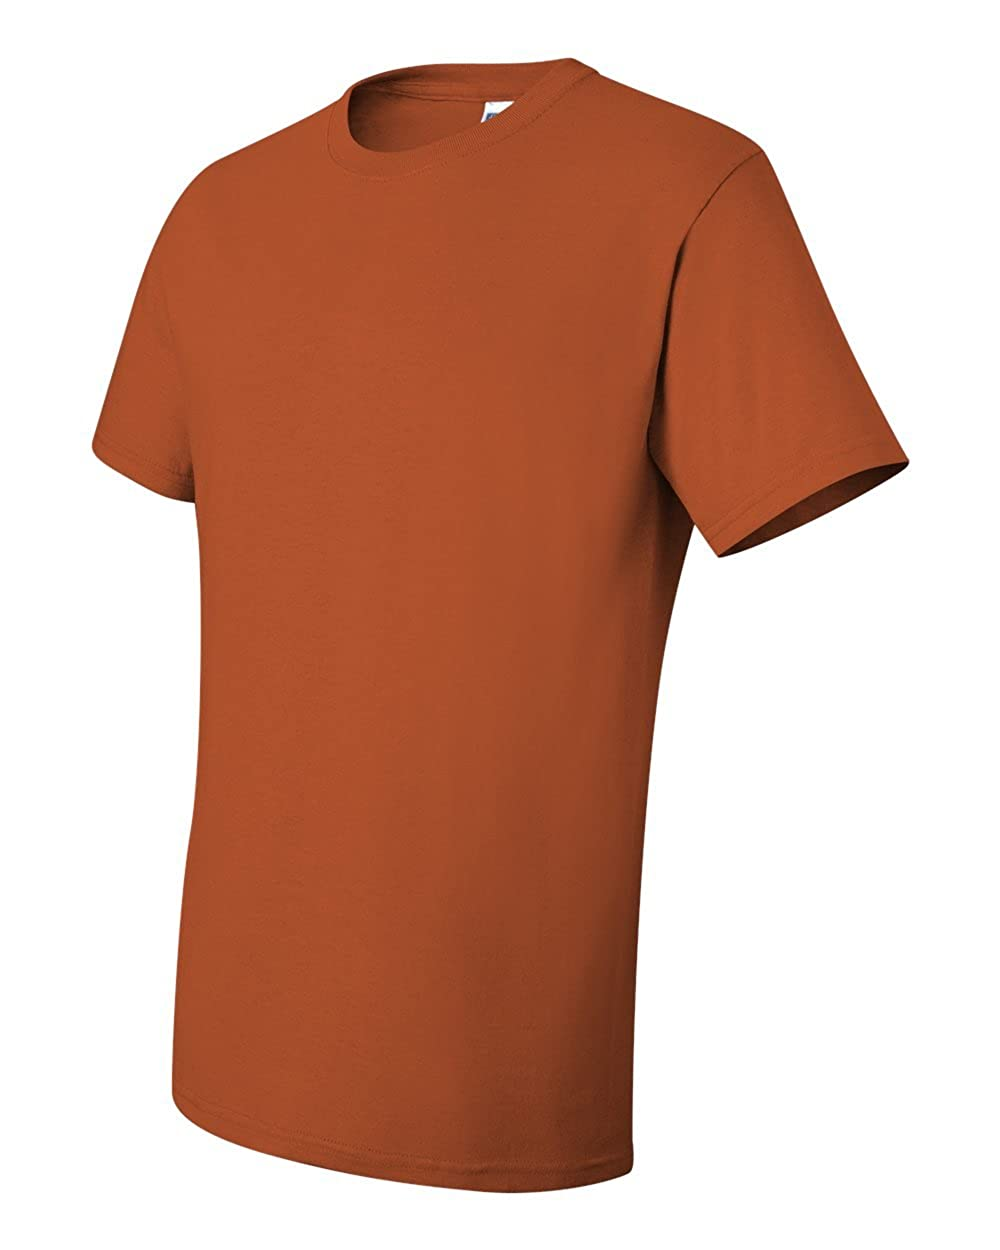 50//50 Heavyweight Blend T-Shirt Jerzees 5.6 oz. TEXAS ORANGE 29M